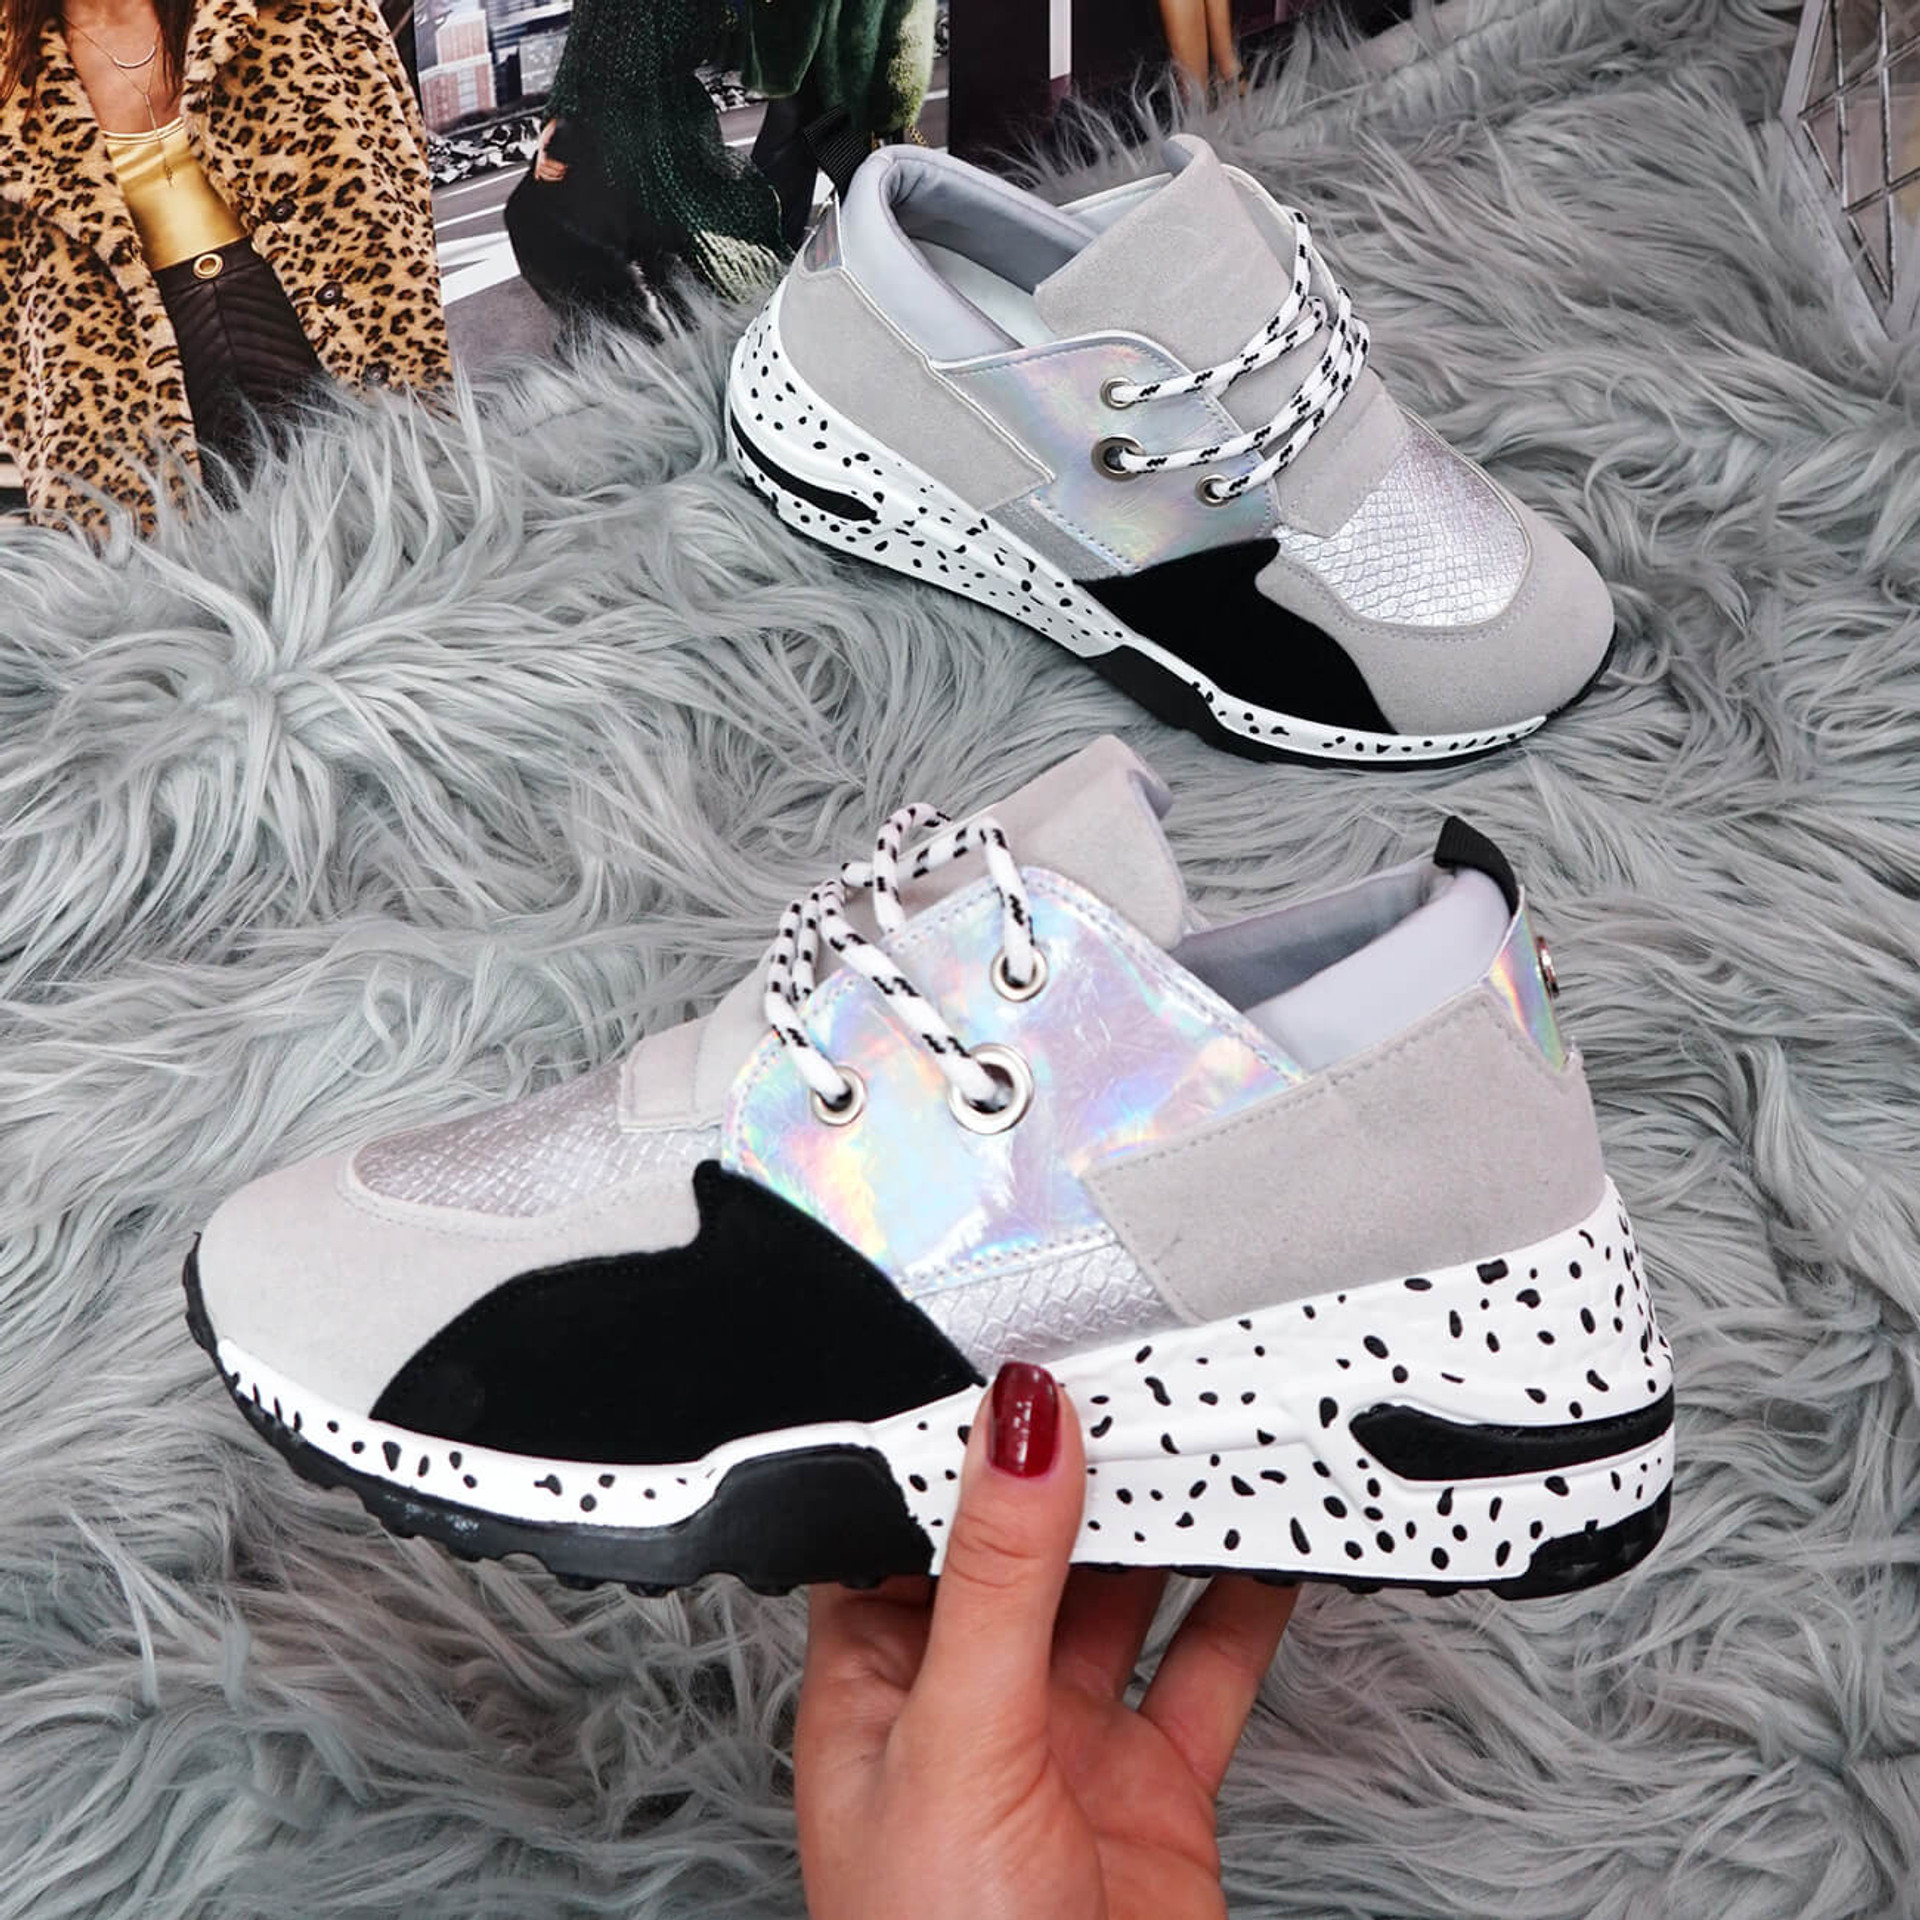 womens grey black white shiny lace-up platform trainers sneakers with snake pattern size uk 3 4 5 6 7 8